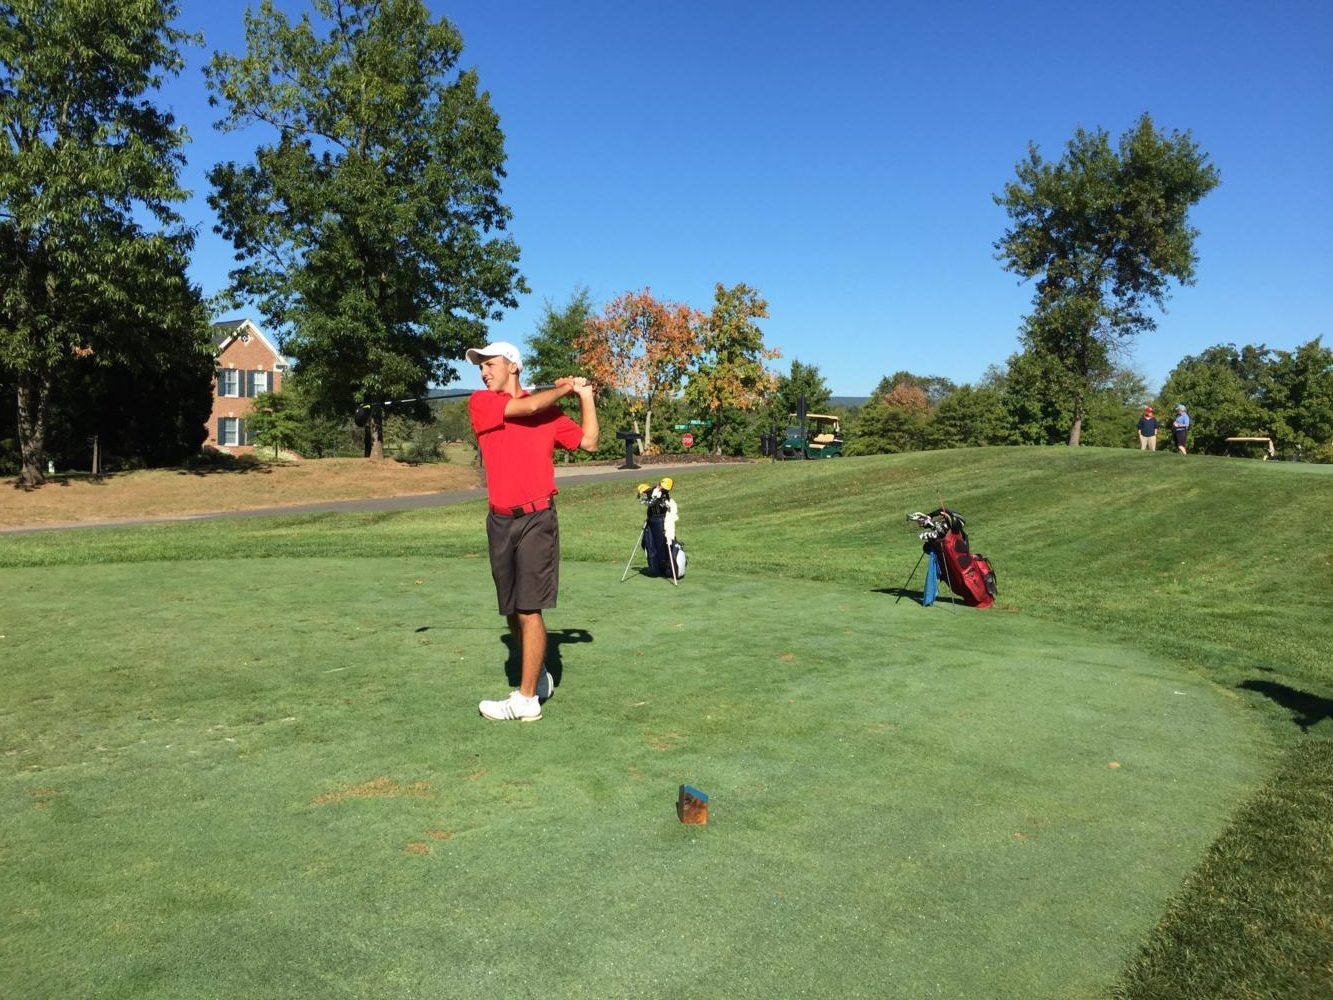 Senior Tommy Schilder watches his shot (Photo courtesy of Tommy Schilder)